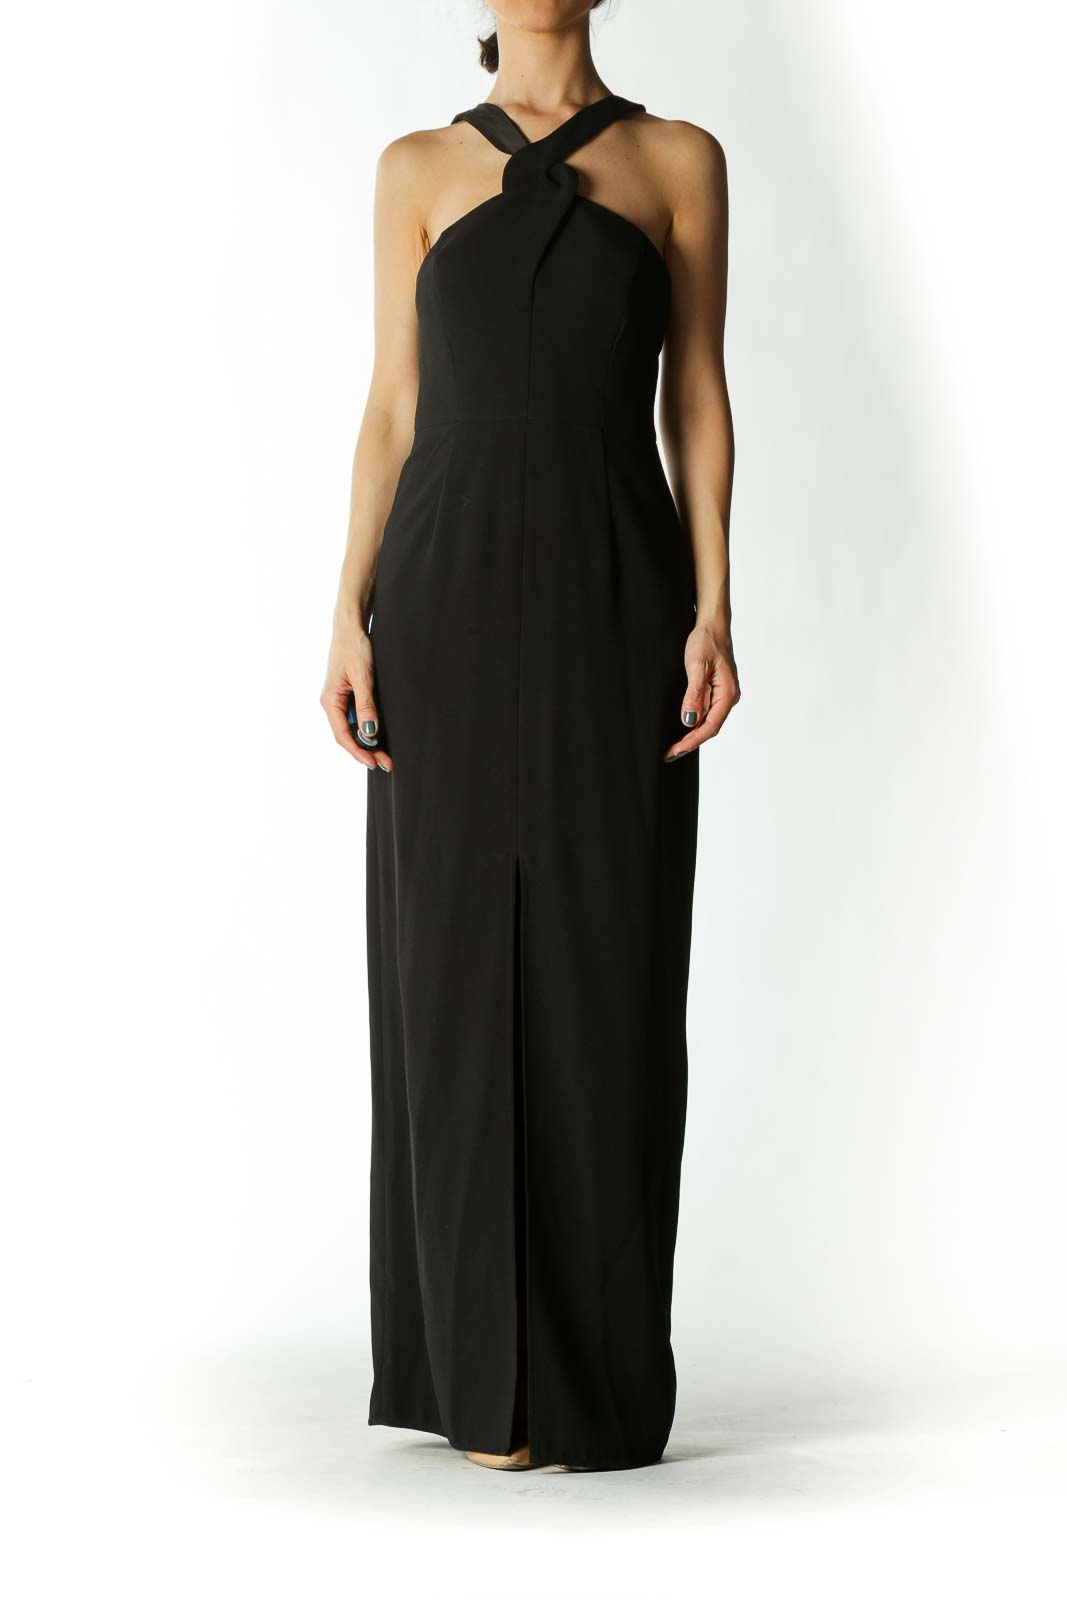 Black Cross-Back Narrow V-neck Evening Dress with Slit Front